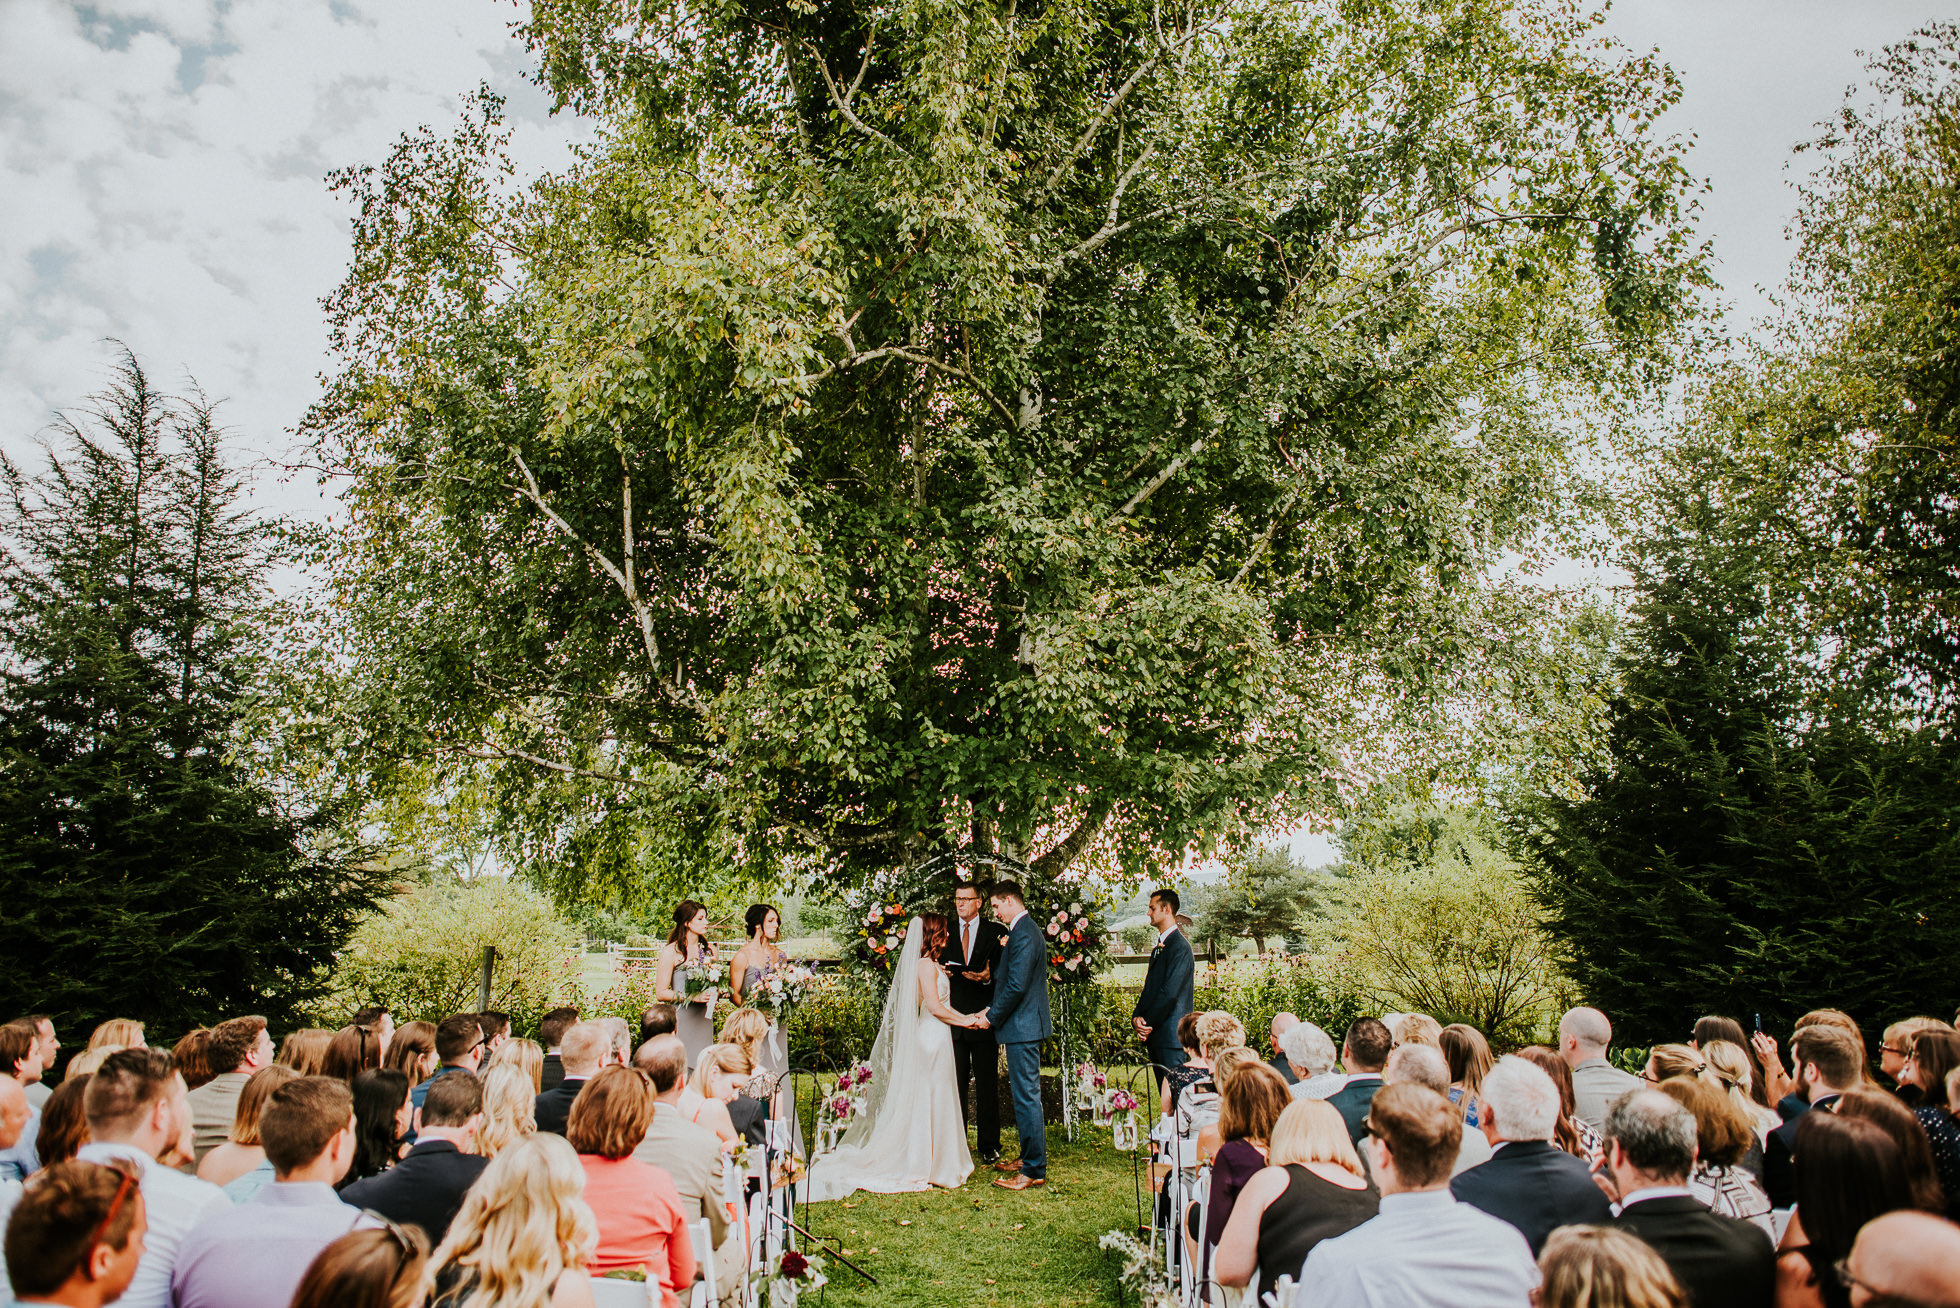 rustic outdoor ceremony at olde tater barn wedding photographed by traverse the tides